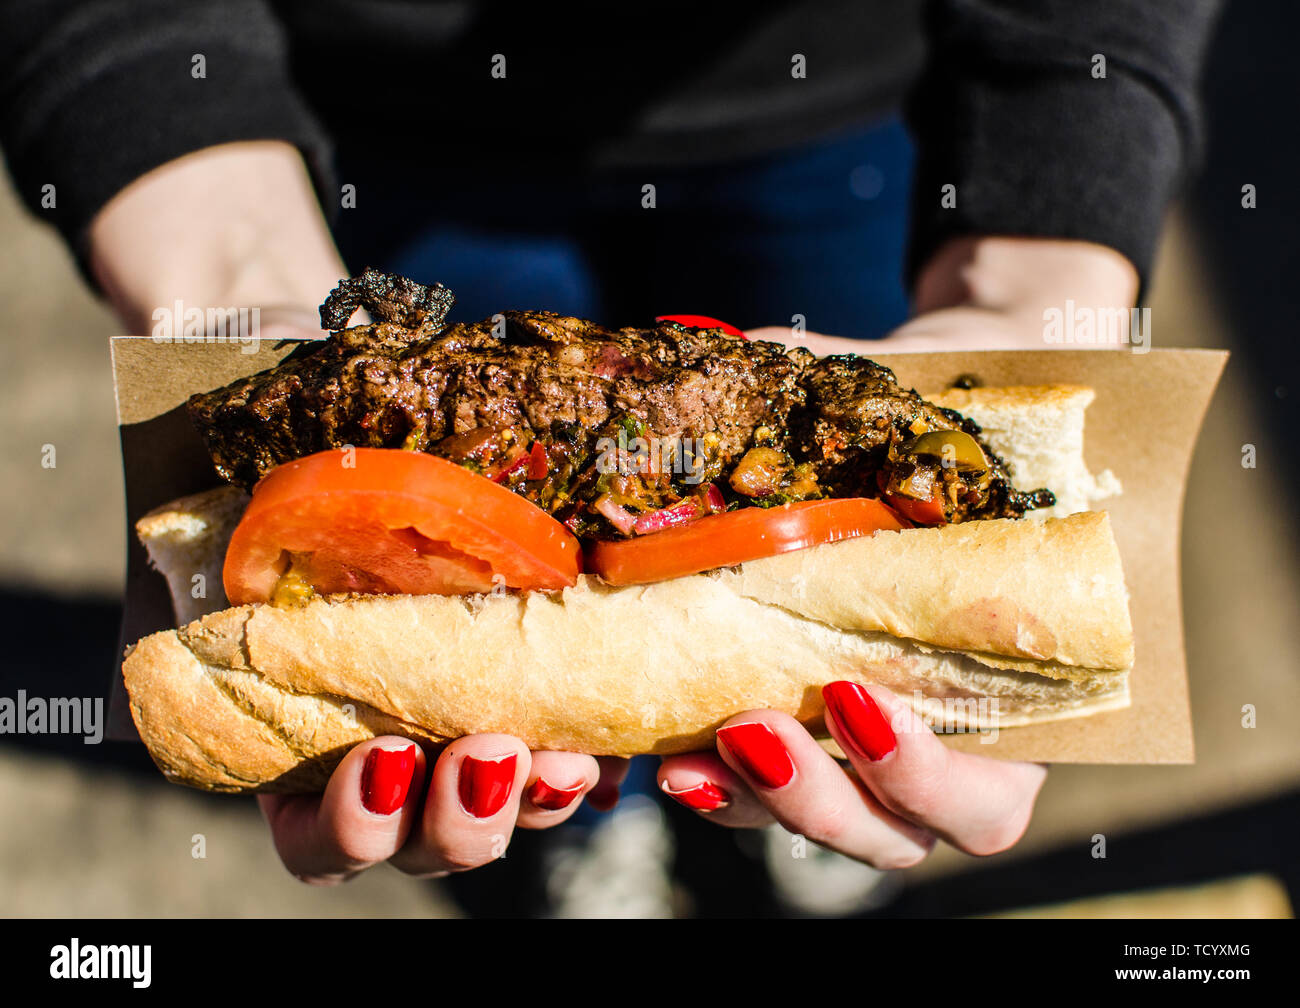 Argentina street food, sandwich with New York strip steak and chimichurri sauce - Stock Image